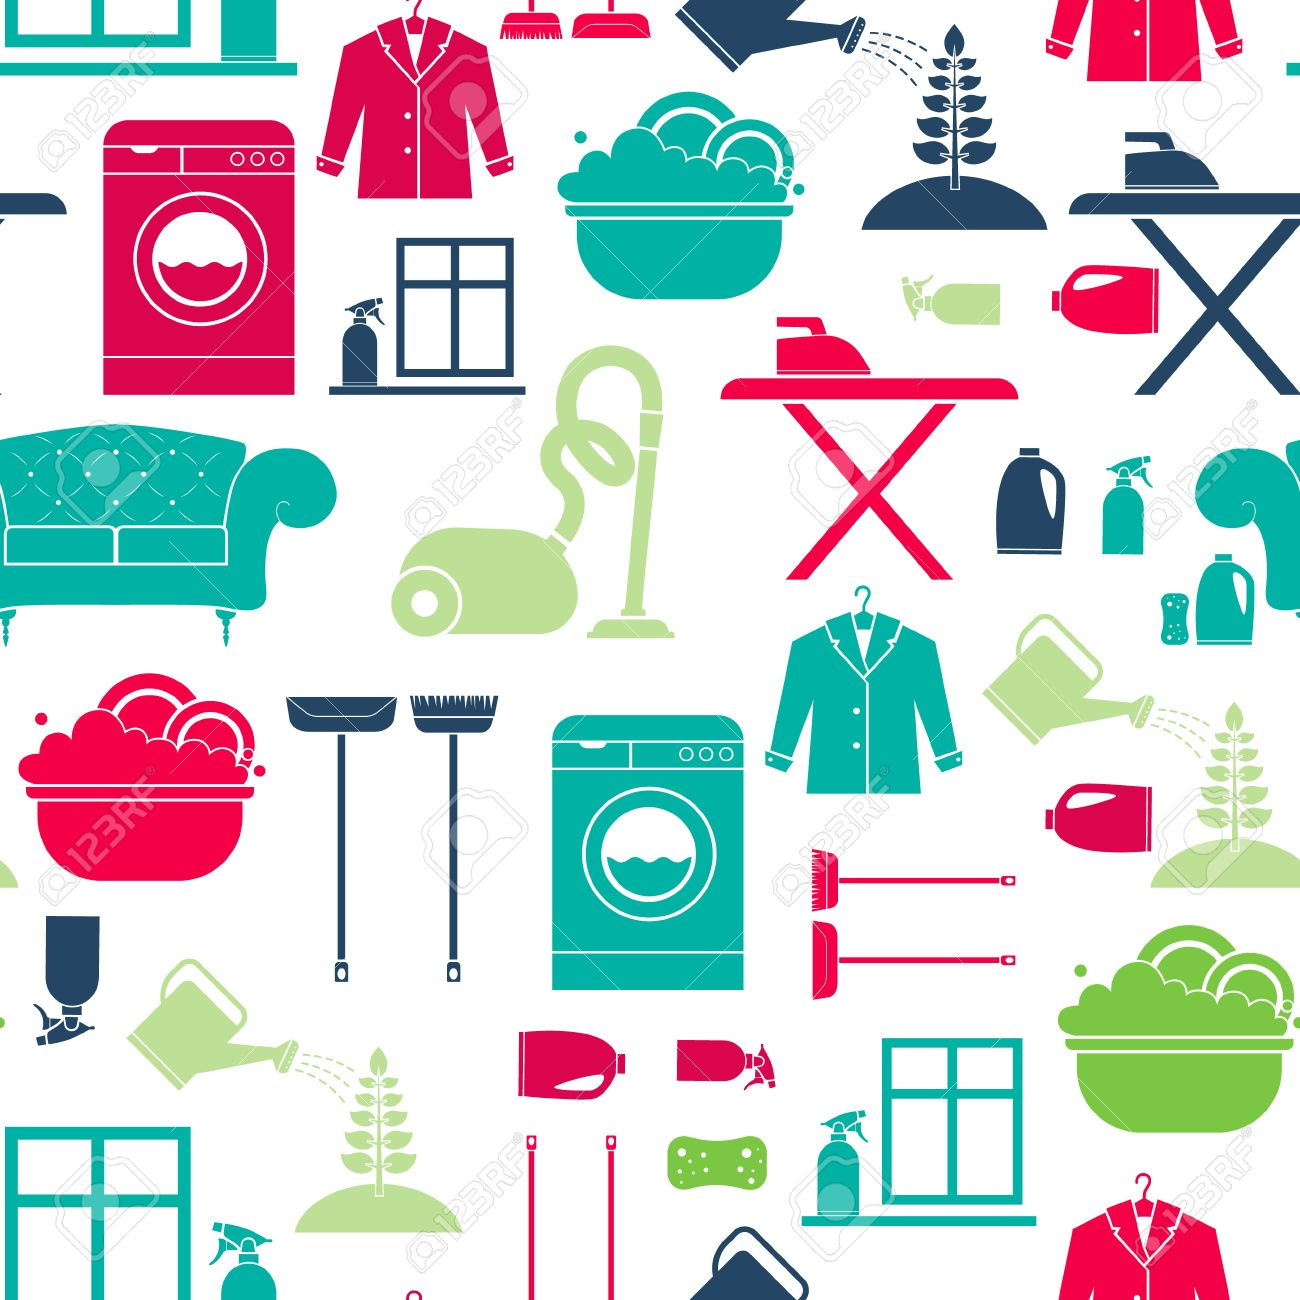 Seamless Vector Background With House Cleaning Items   Washing Mashine,  Plant Care, Dry Clean